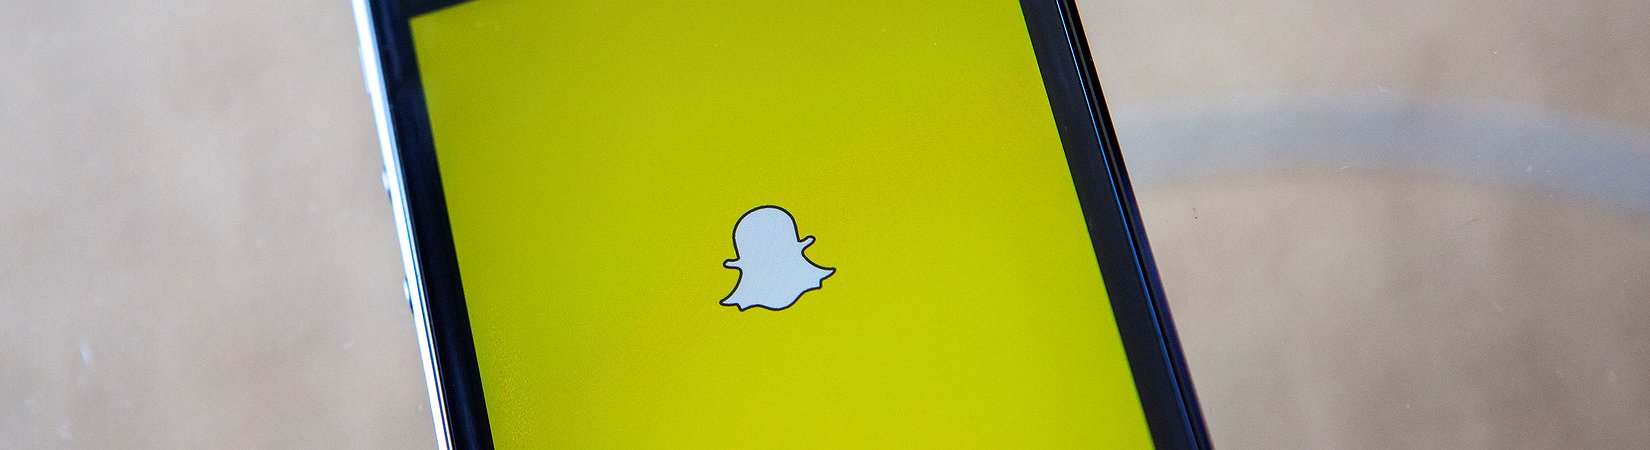 Snap continuing to sign up TV networks to produce original content for app